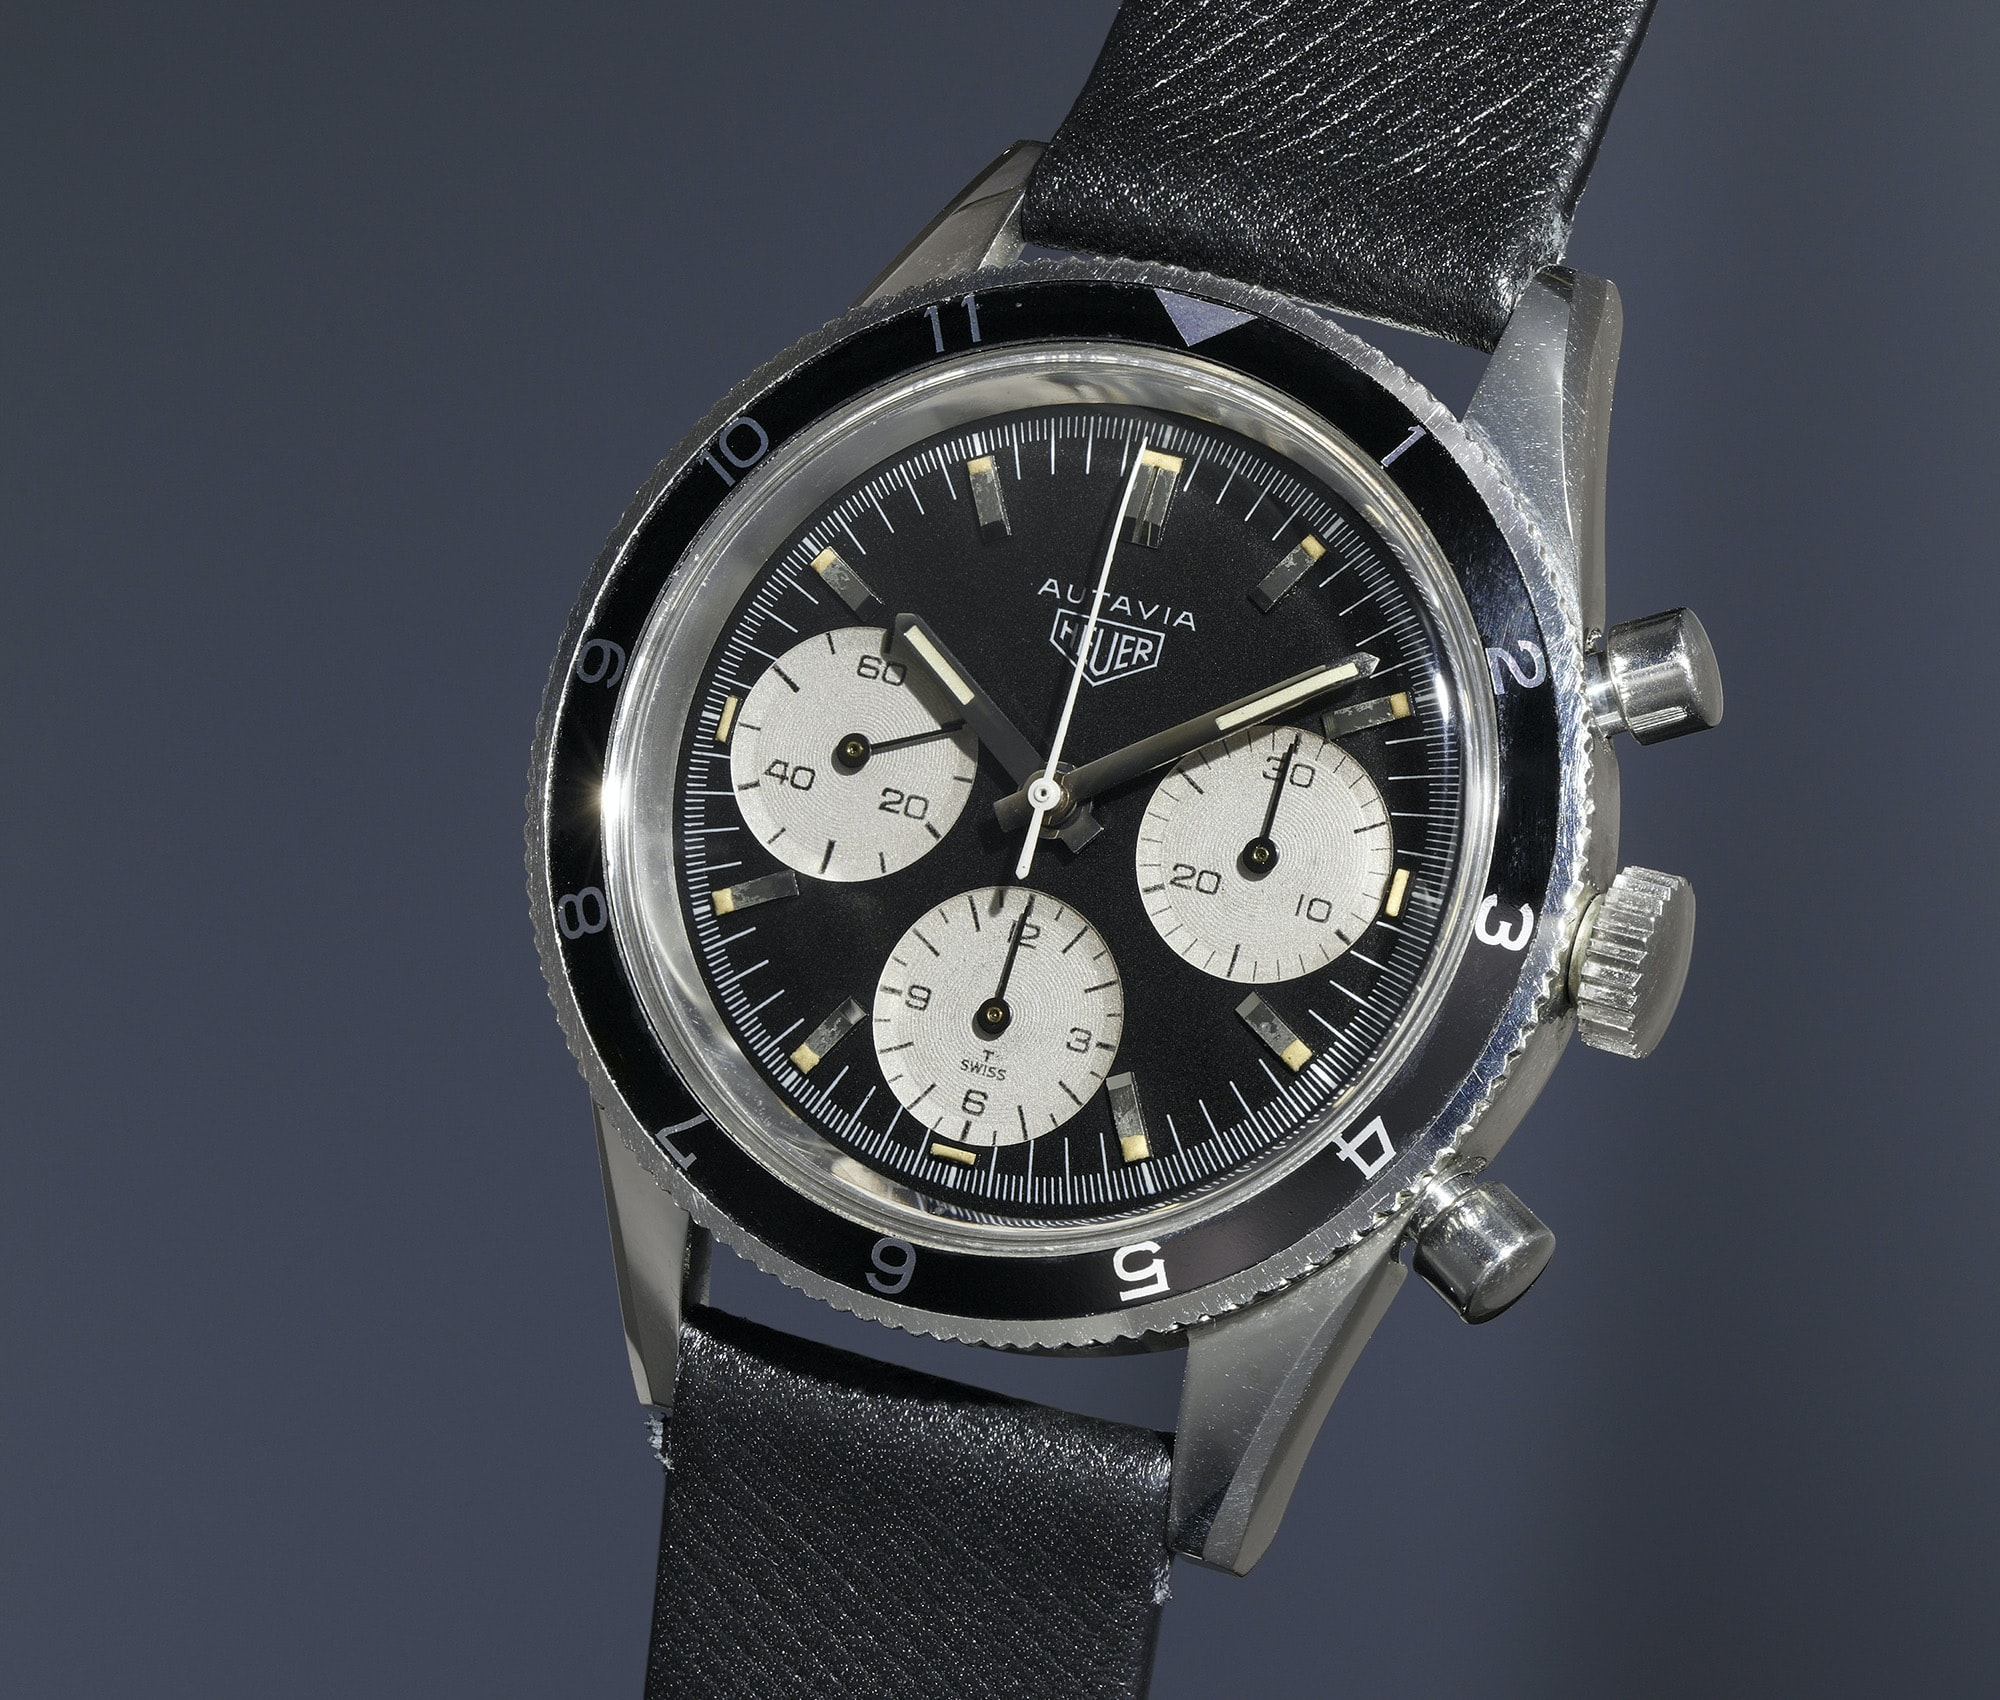 Four Heuers Sold For A Total Of $461,333 Over The Weekend At Sotheby's And Phillips Four Heuers Sold For A Total Of $461,333 Over The Weekend At Sotheby's And Phillips 2